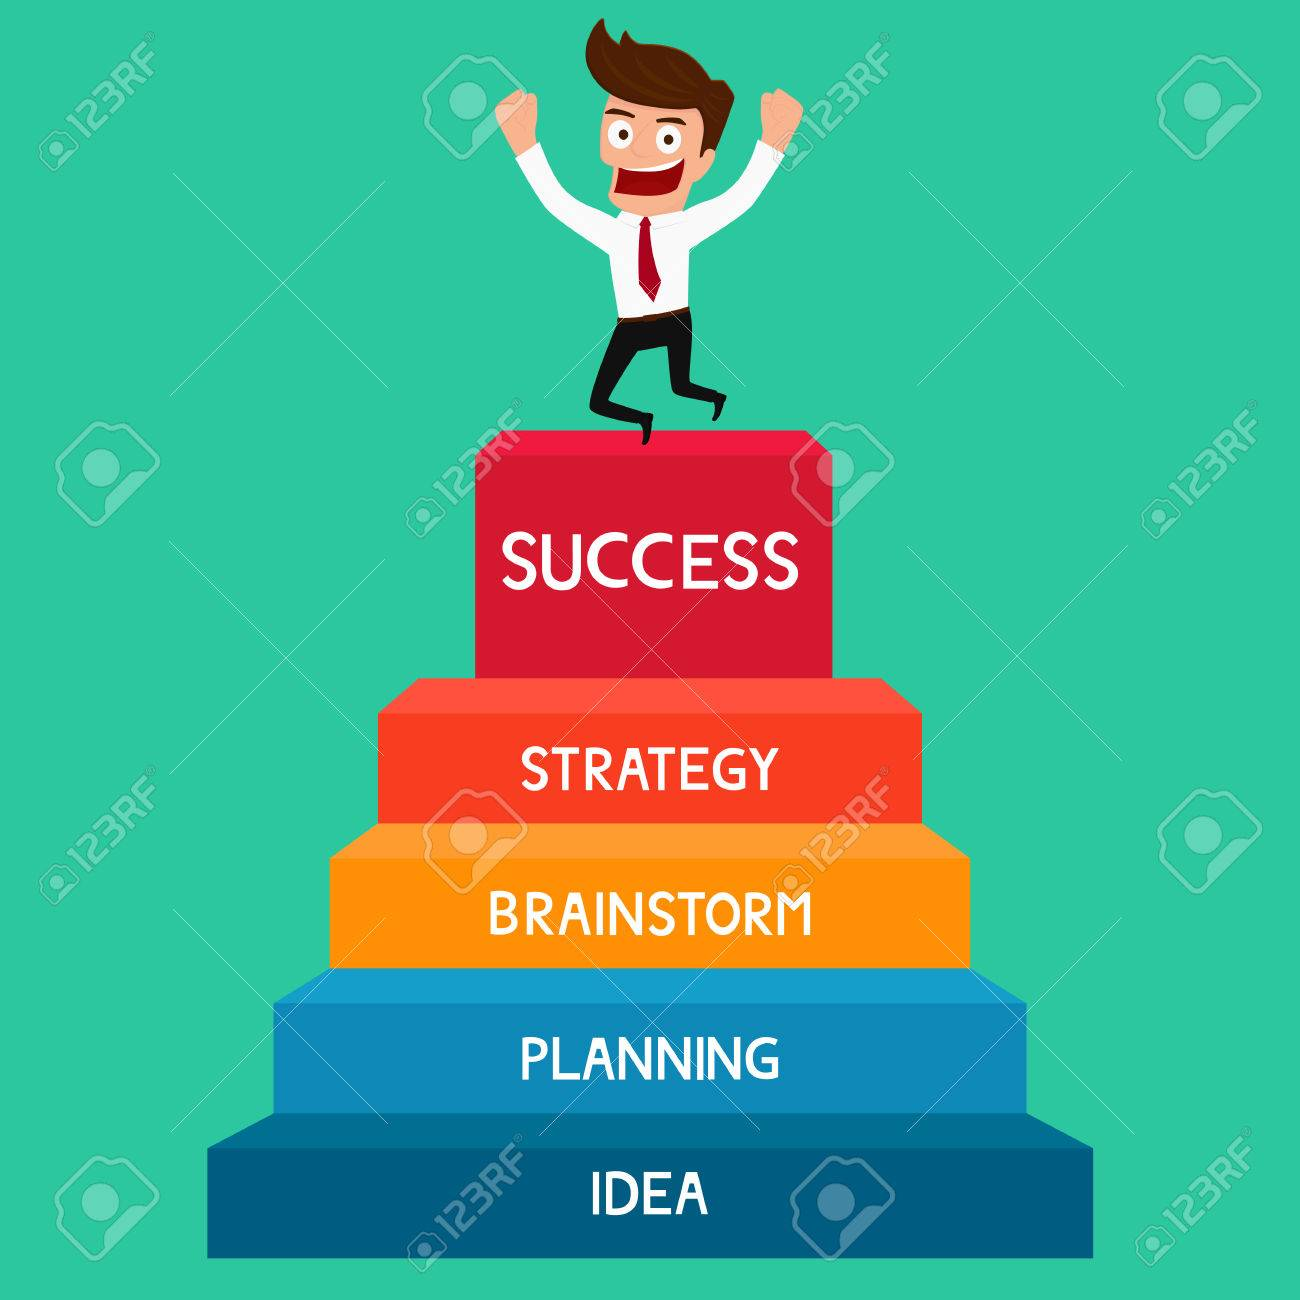 businessman going up to success staircase to success cartoon royalty free cliparts vectors and stock illustration image 40176115 123rf com